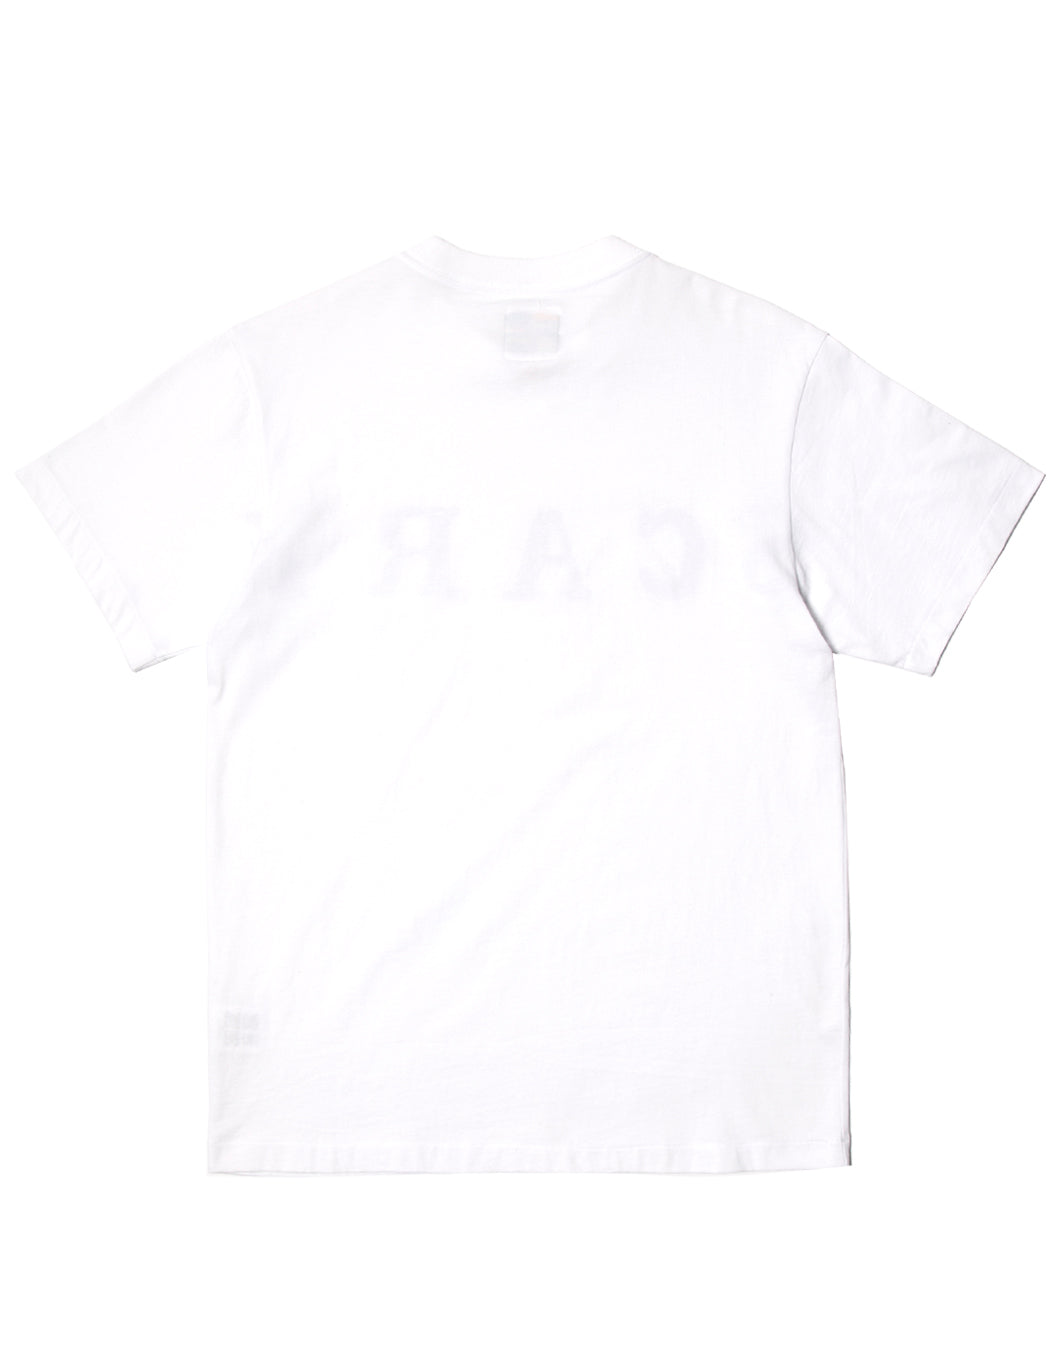 SCARY Oversized Text S/S T-Shirt - White - Eine London by Ben Eine